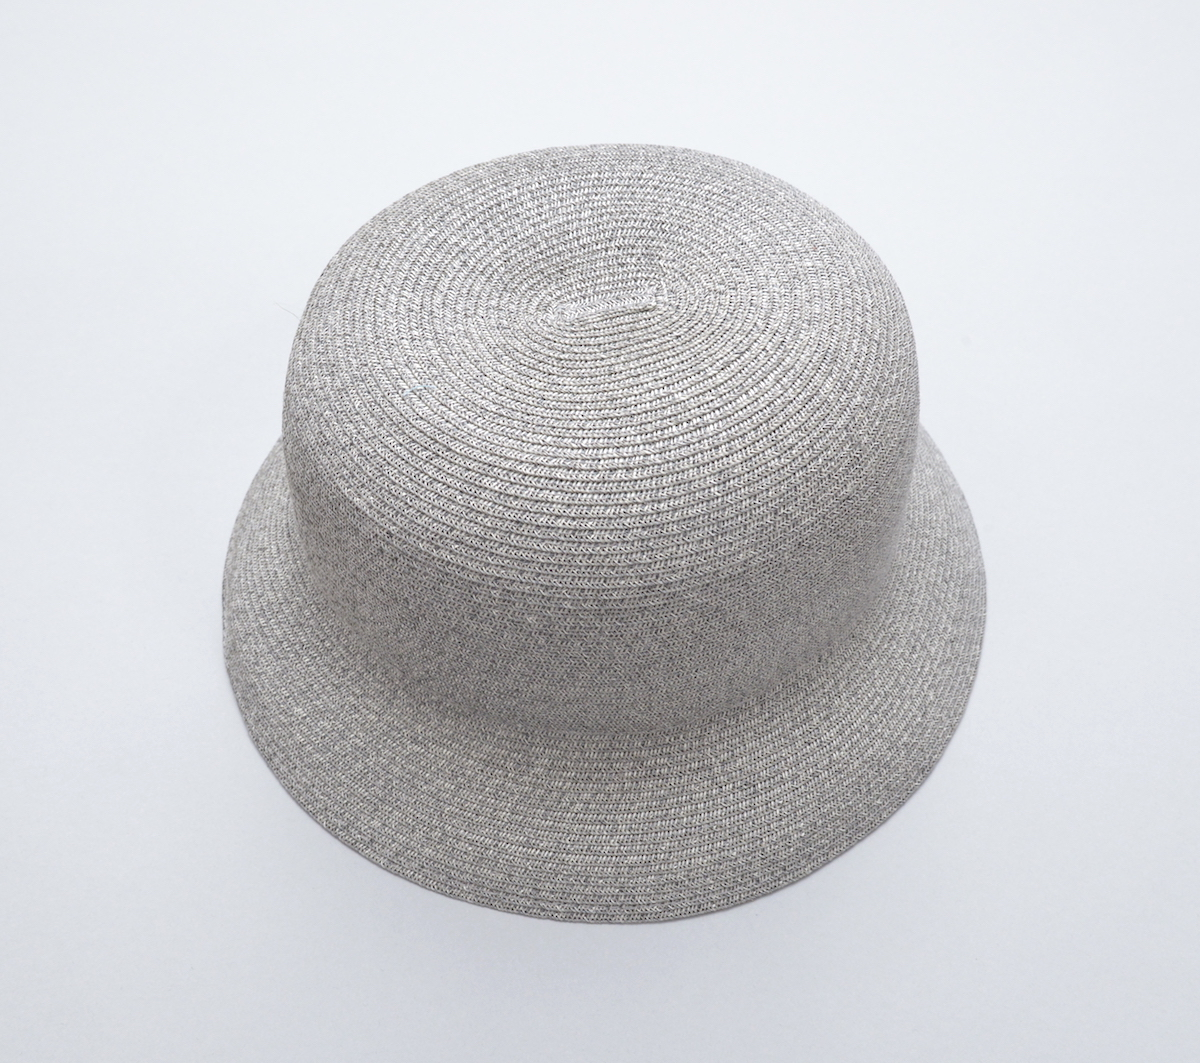 BROWN by 2-tacs「 DOWN BRIM HAT / GRAY 」